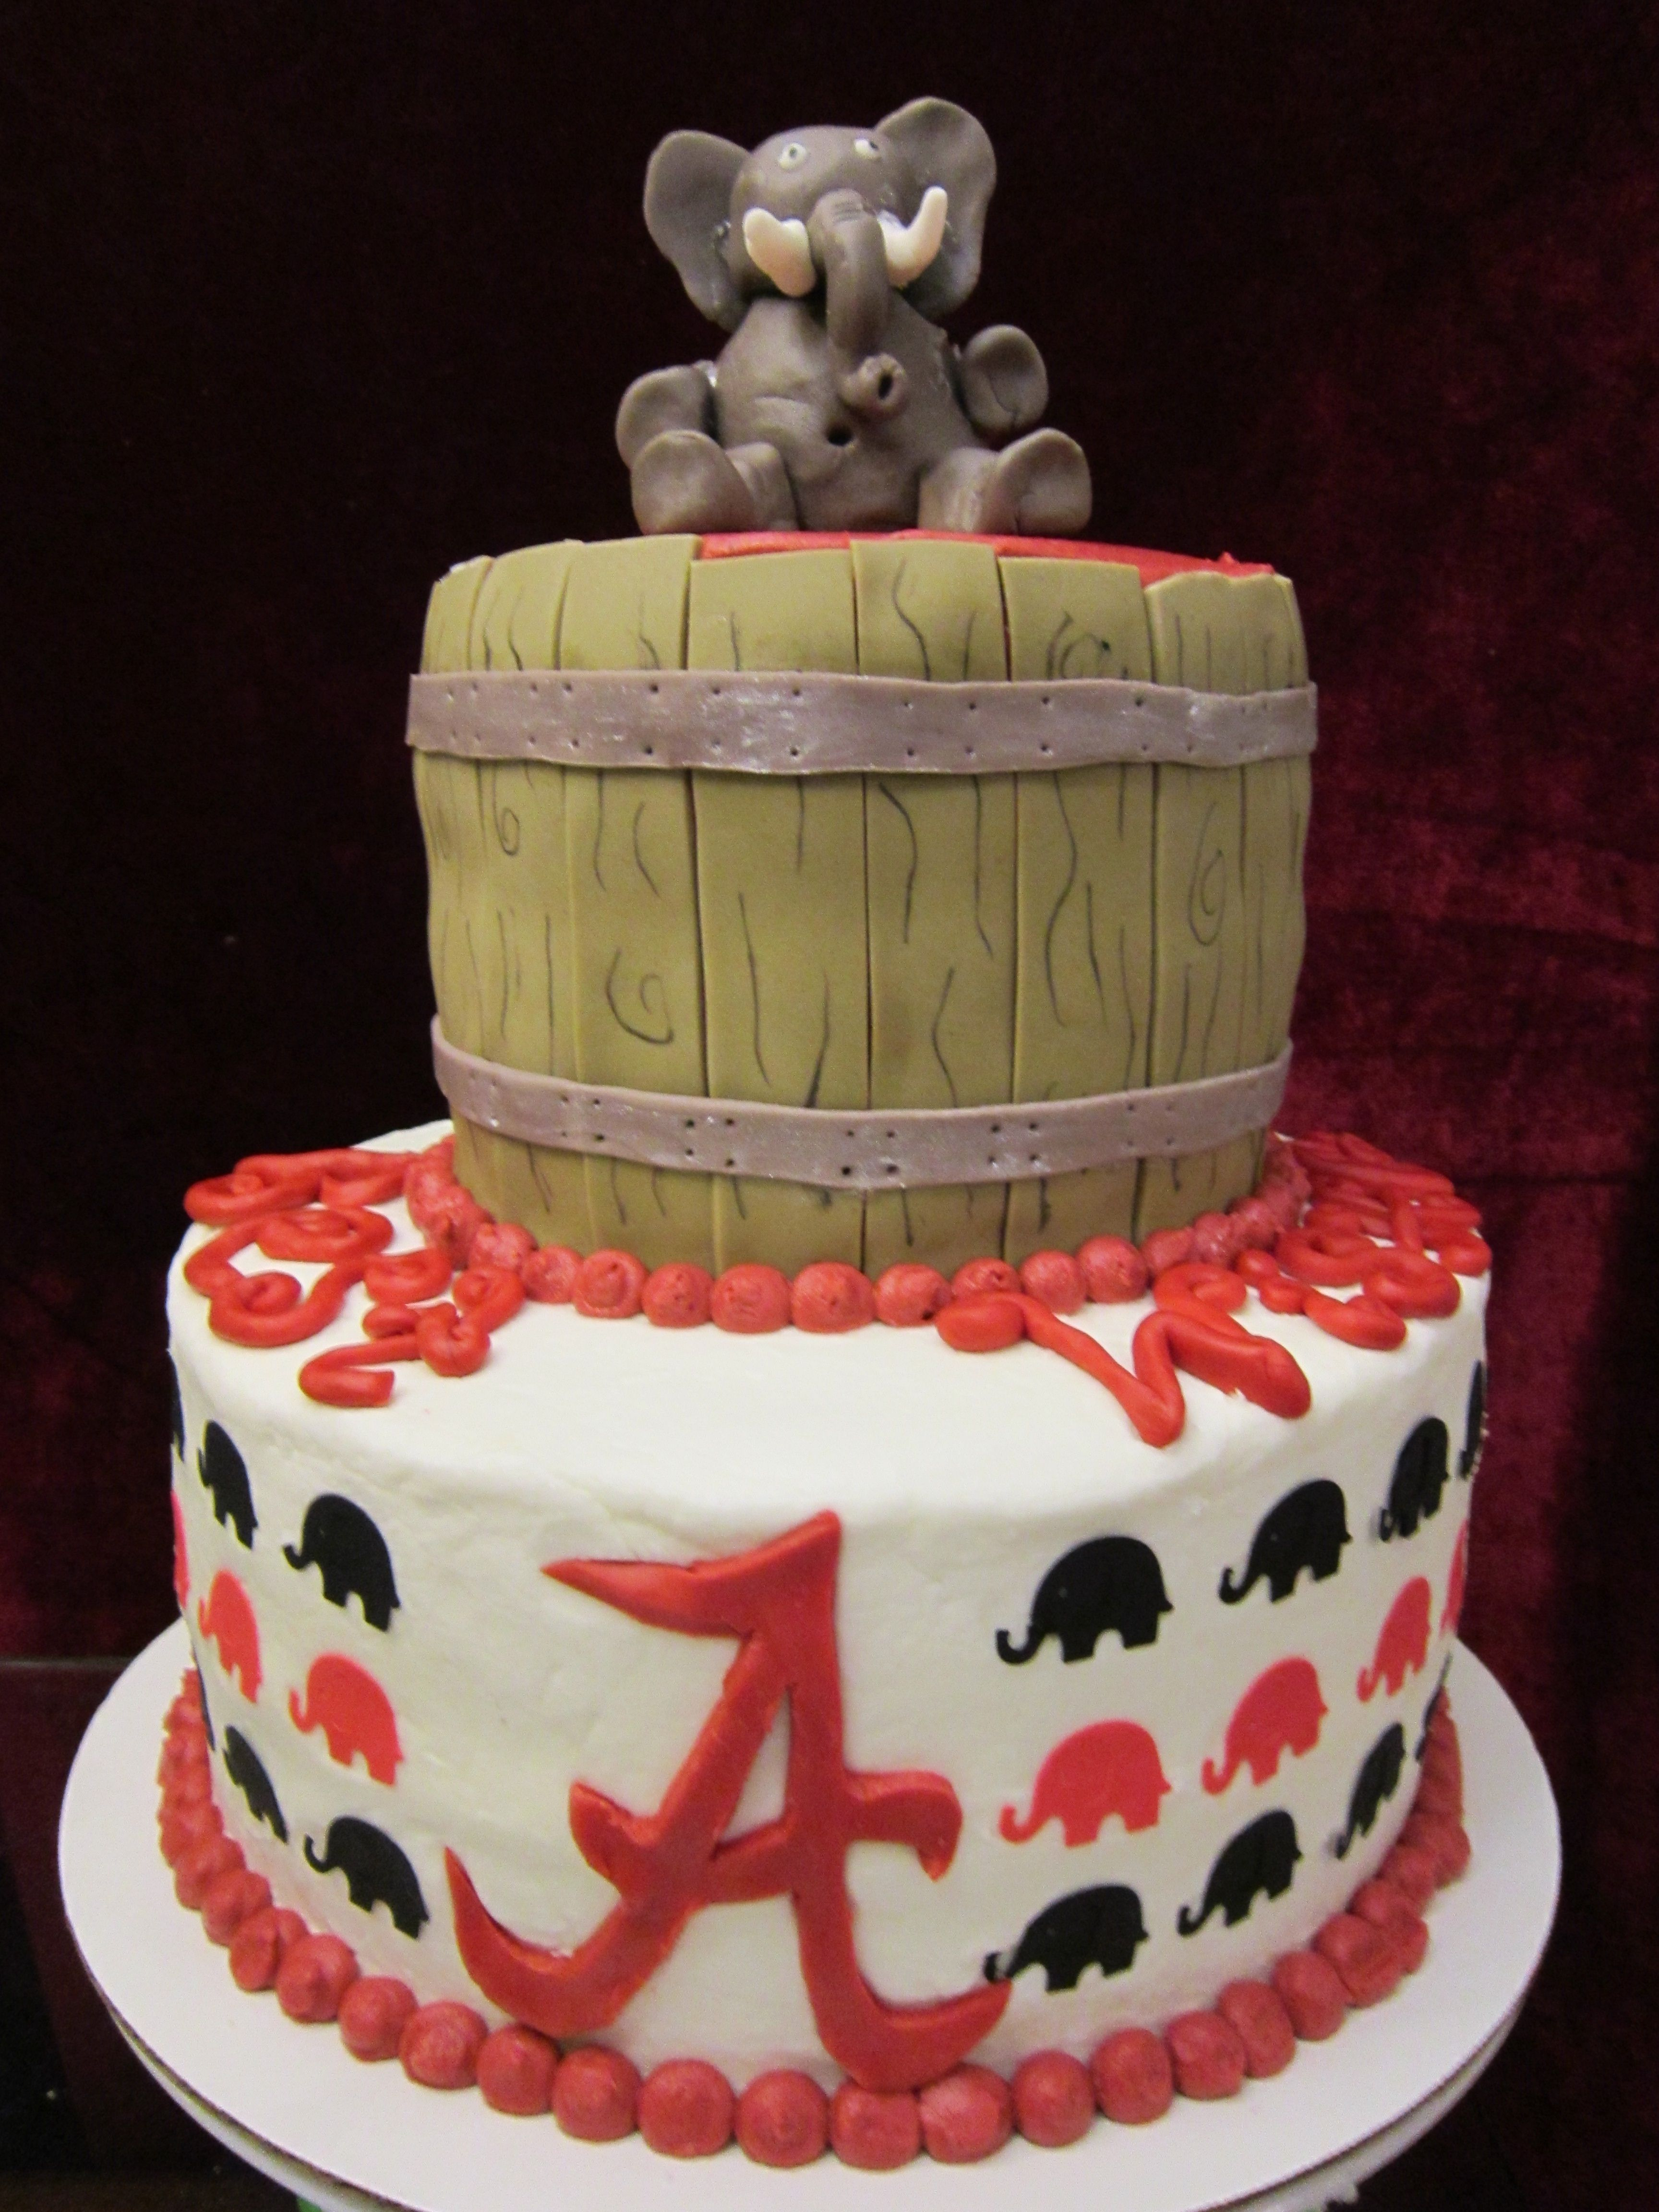 Alabama Cracker Barrel Cake Made For A Lady Transferring To The